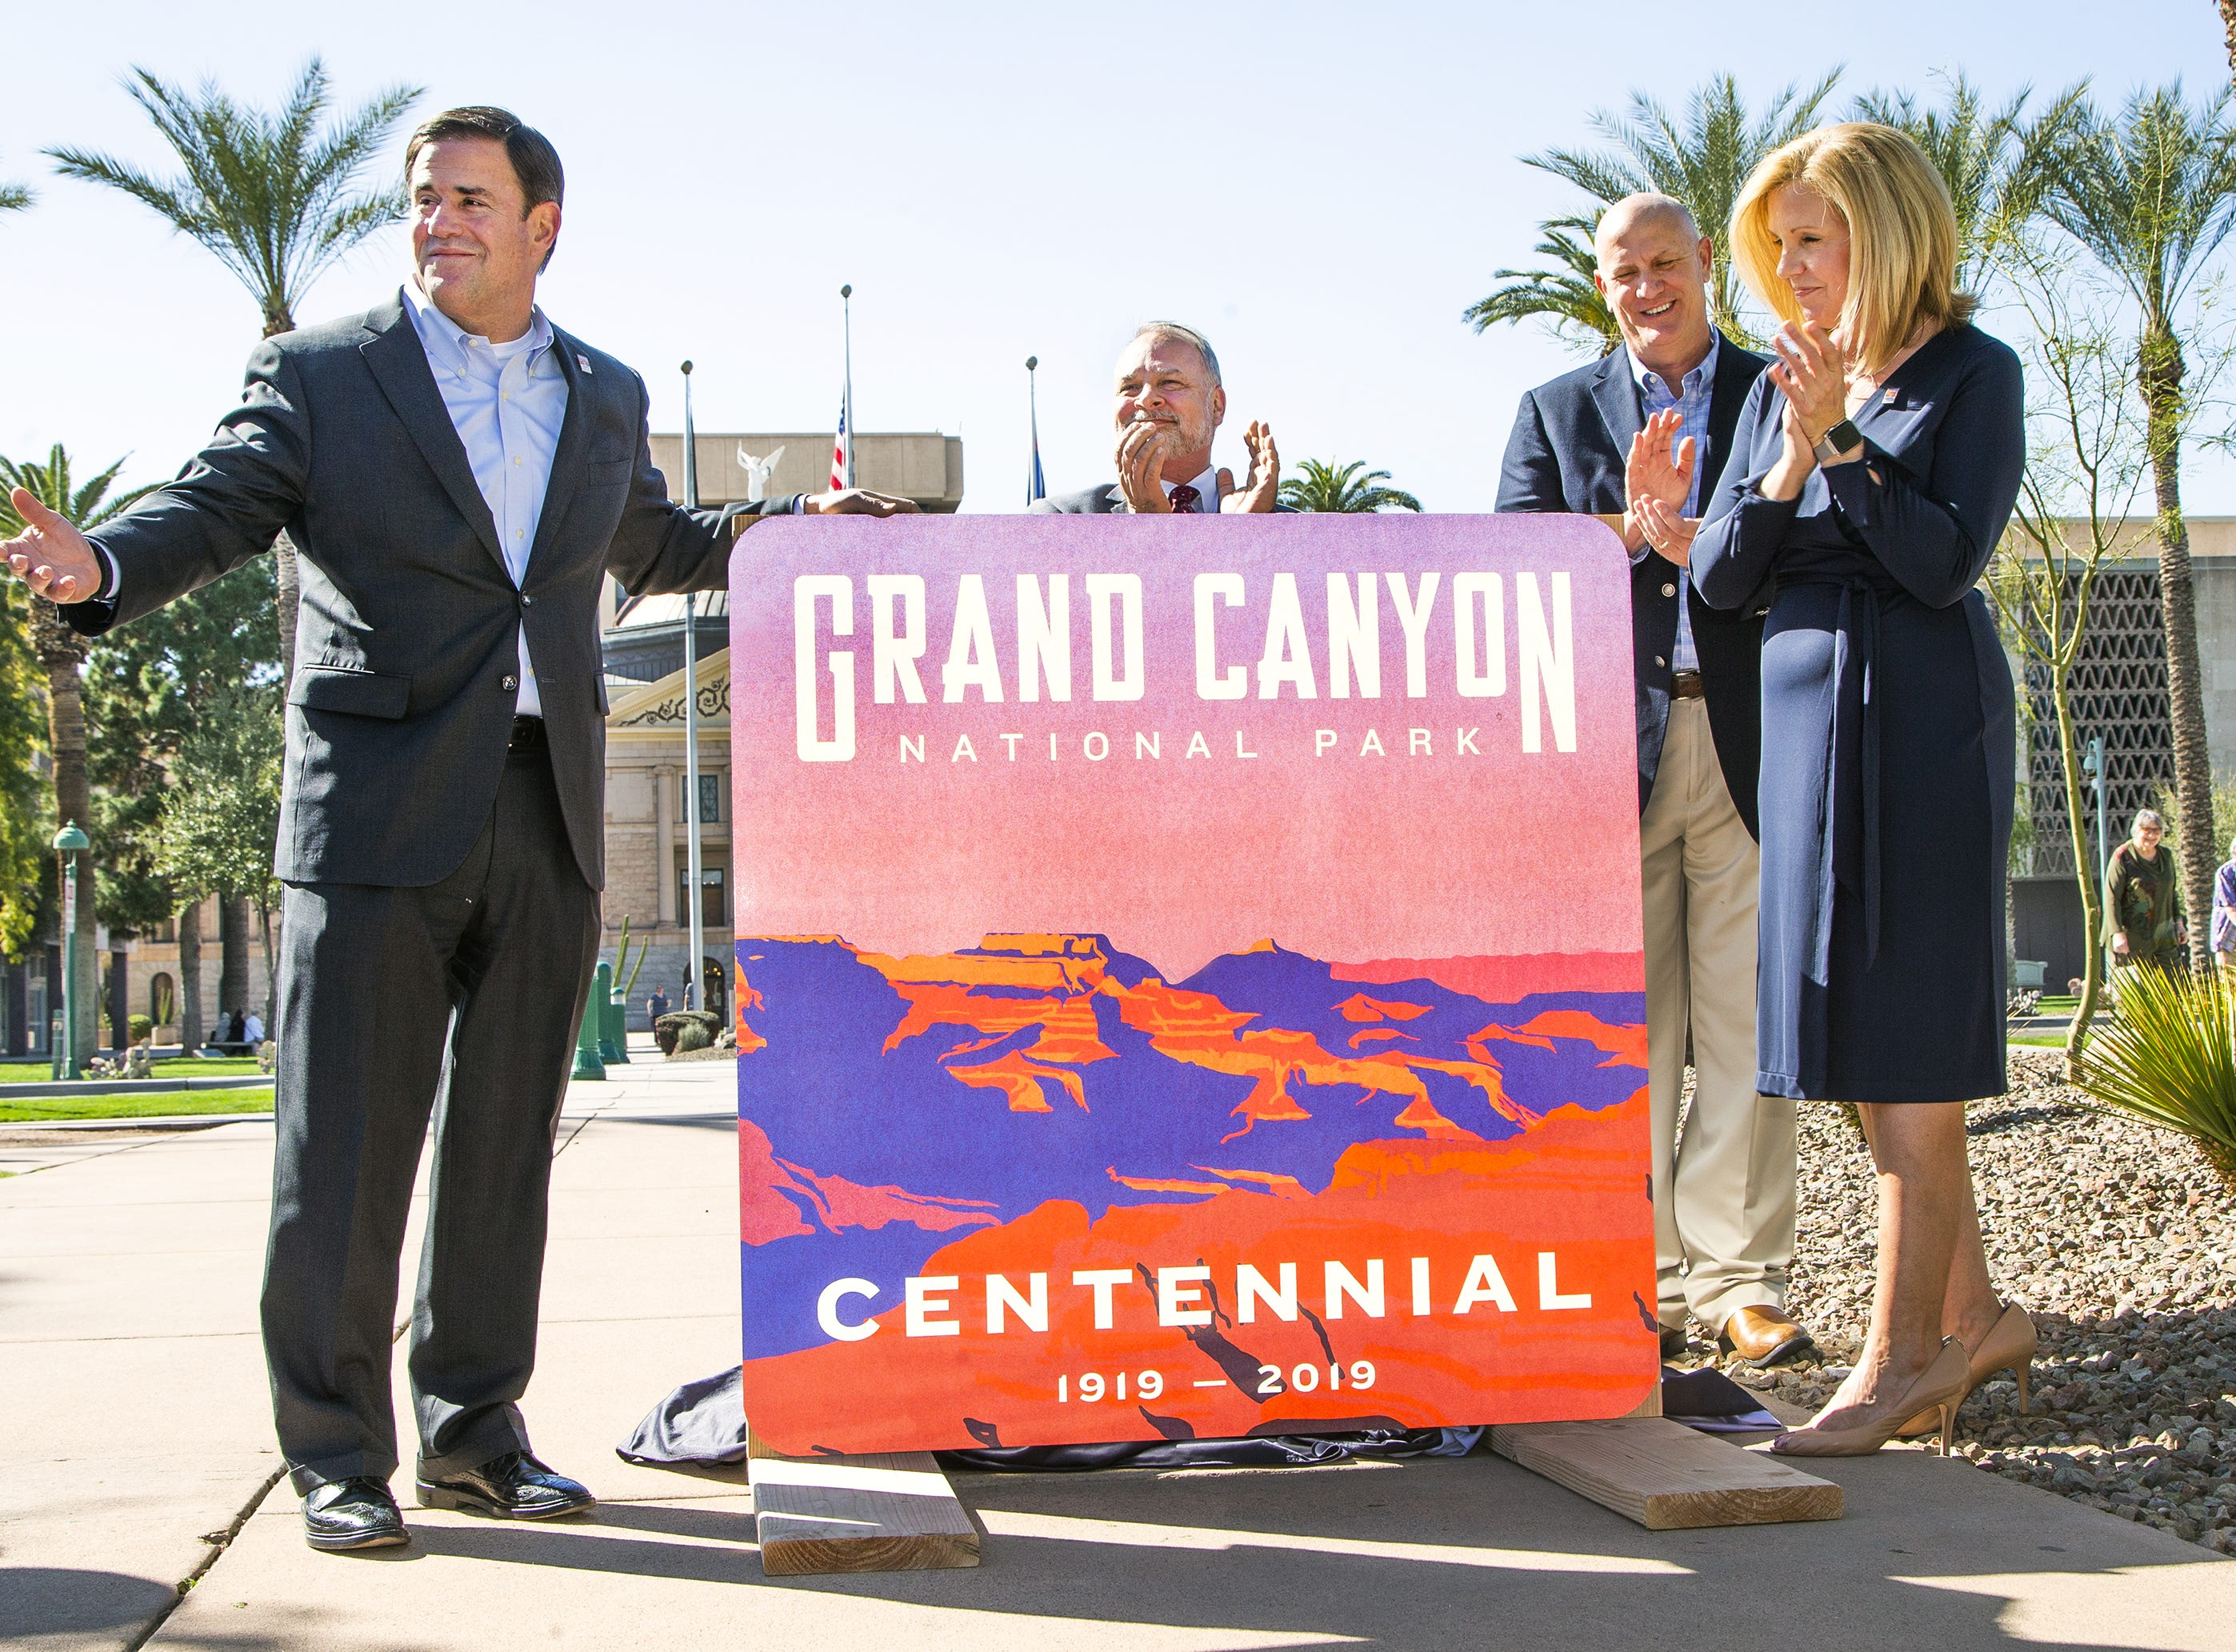 Gov. Doug Ducey, left, helps unveil a new sign marking the 100th birthday of the Grand Canyon during a ceremony in Wesley Bolin Memorial Plaza at the Capitol in Phoenix, February 27, 2019. From left to right are,  John Halikowski, Arizona Department of Transportation director; Robert  Broscheid, executive director of Arizona State Parks and Trails; Debbie Johnson, director of the Arizona Office of Tourism.